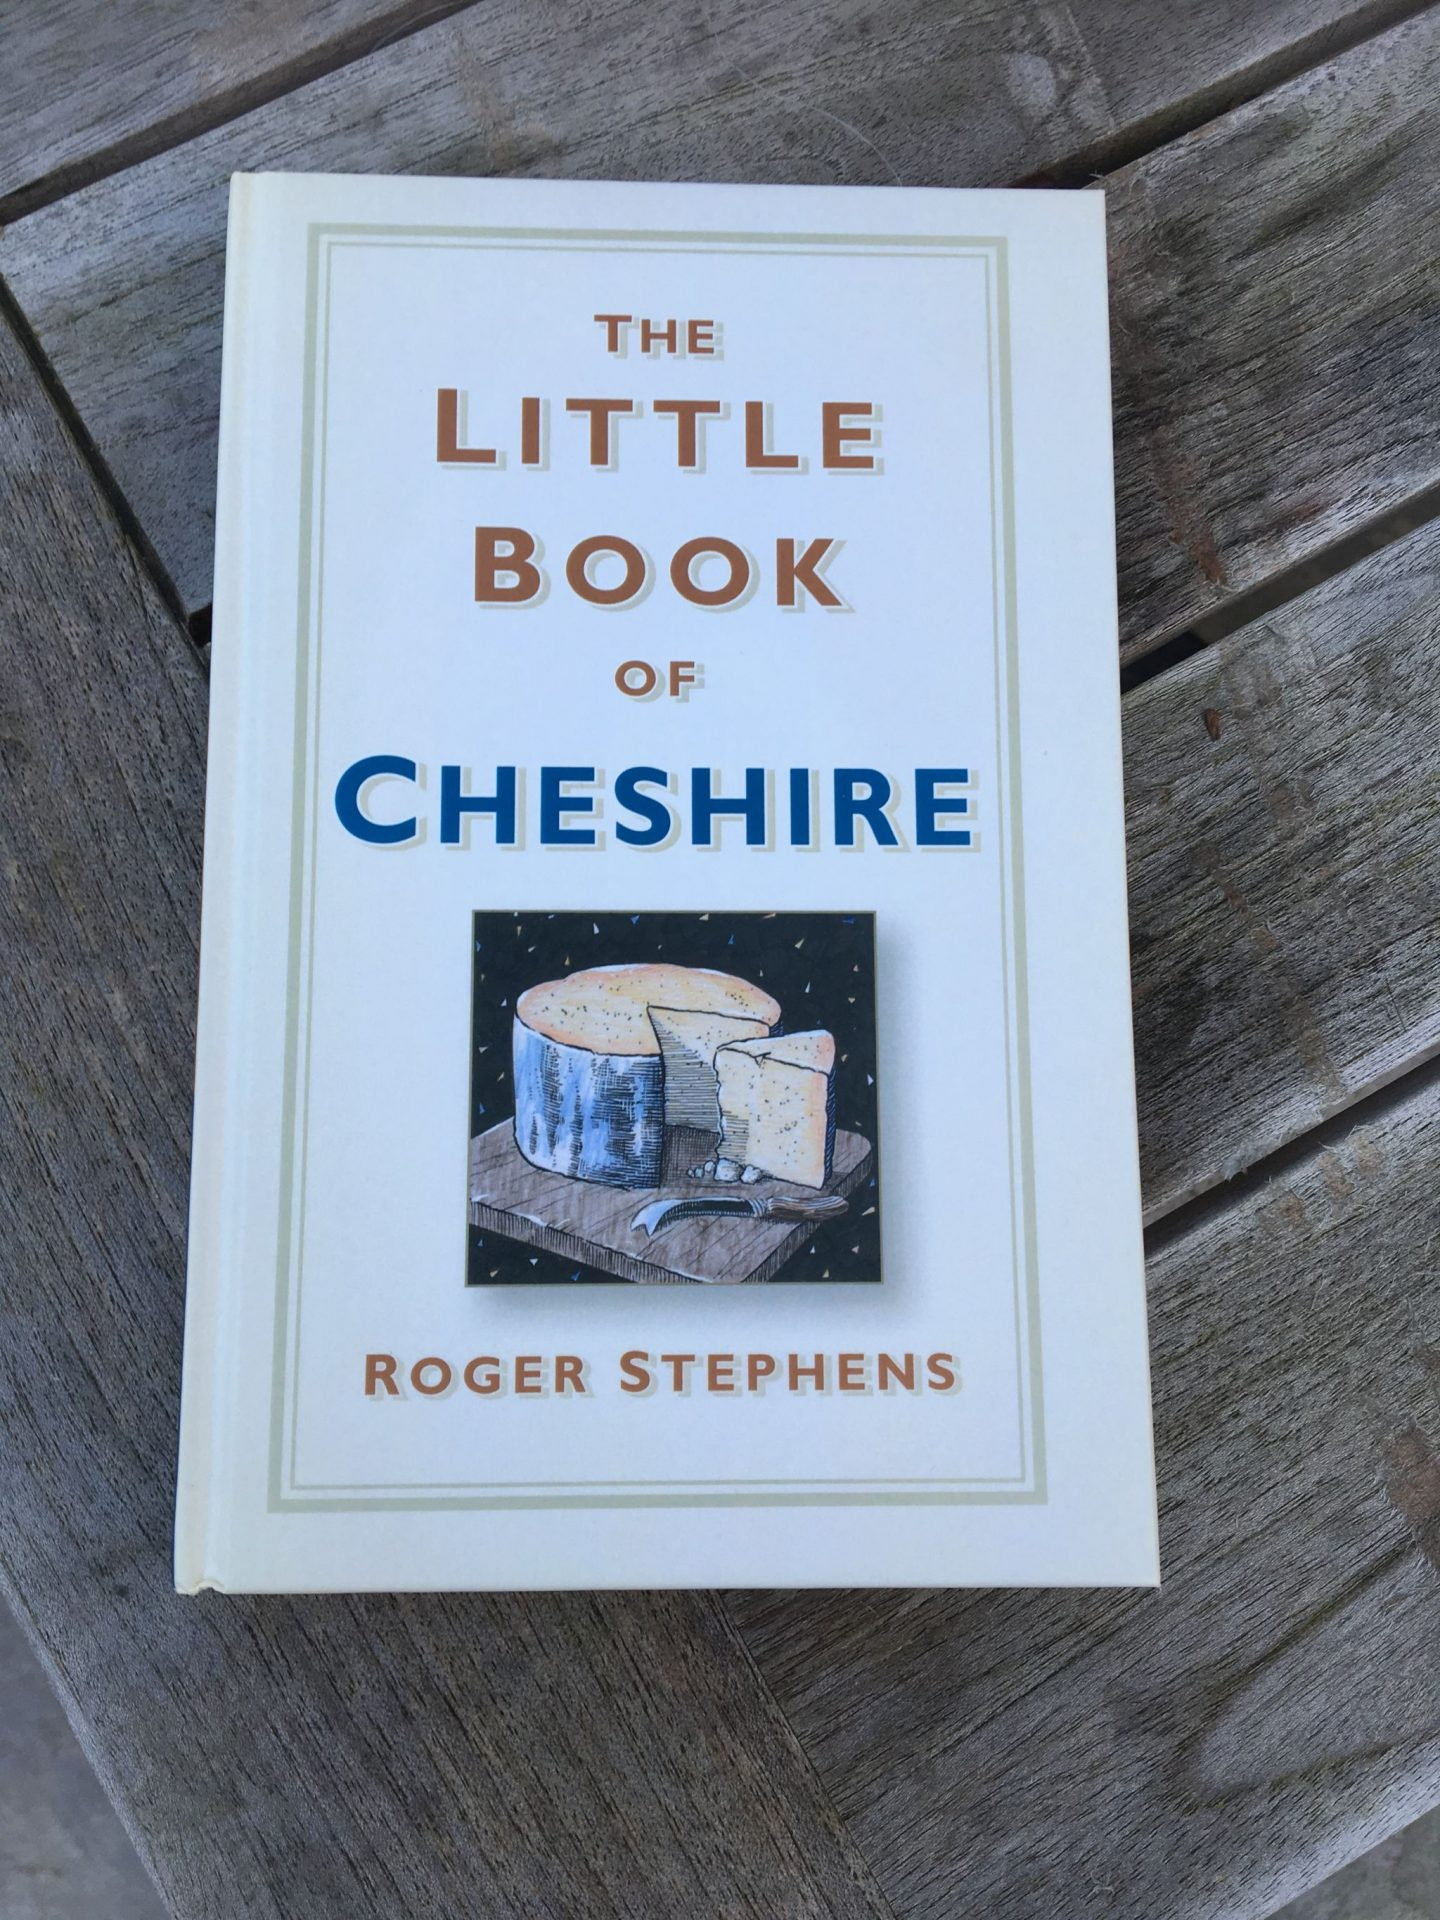 The Little Book of Cheshire Book Review and Competition*